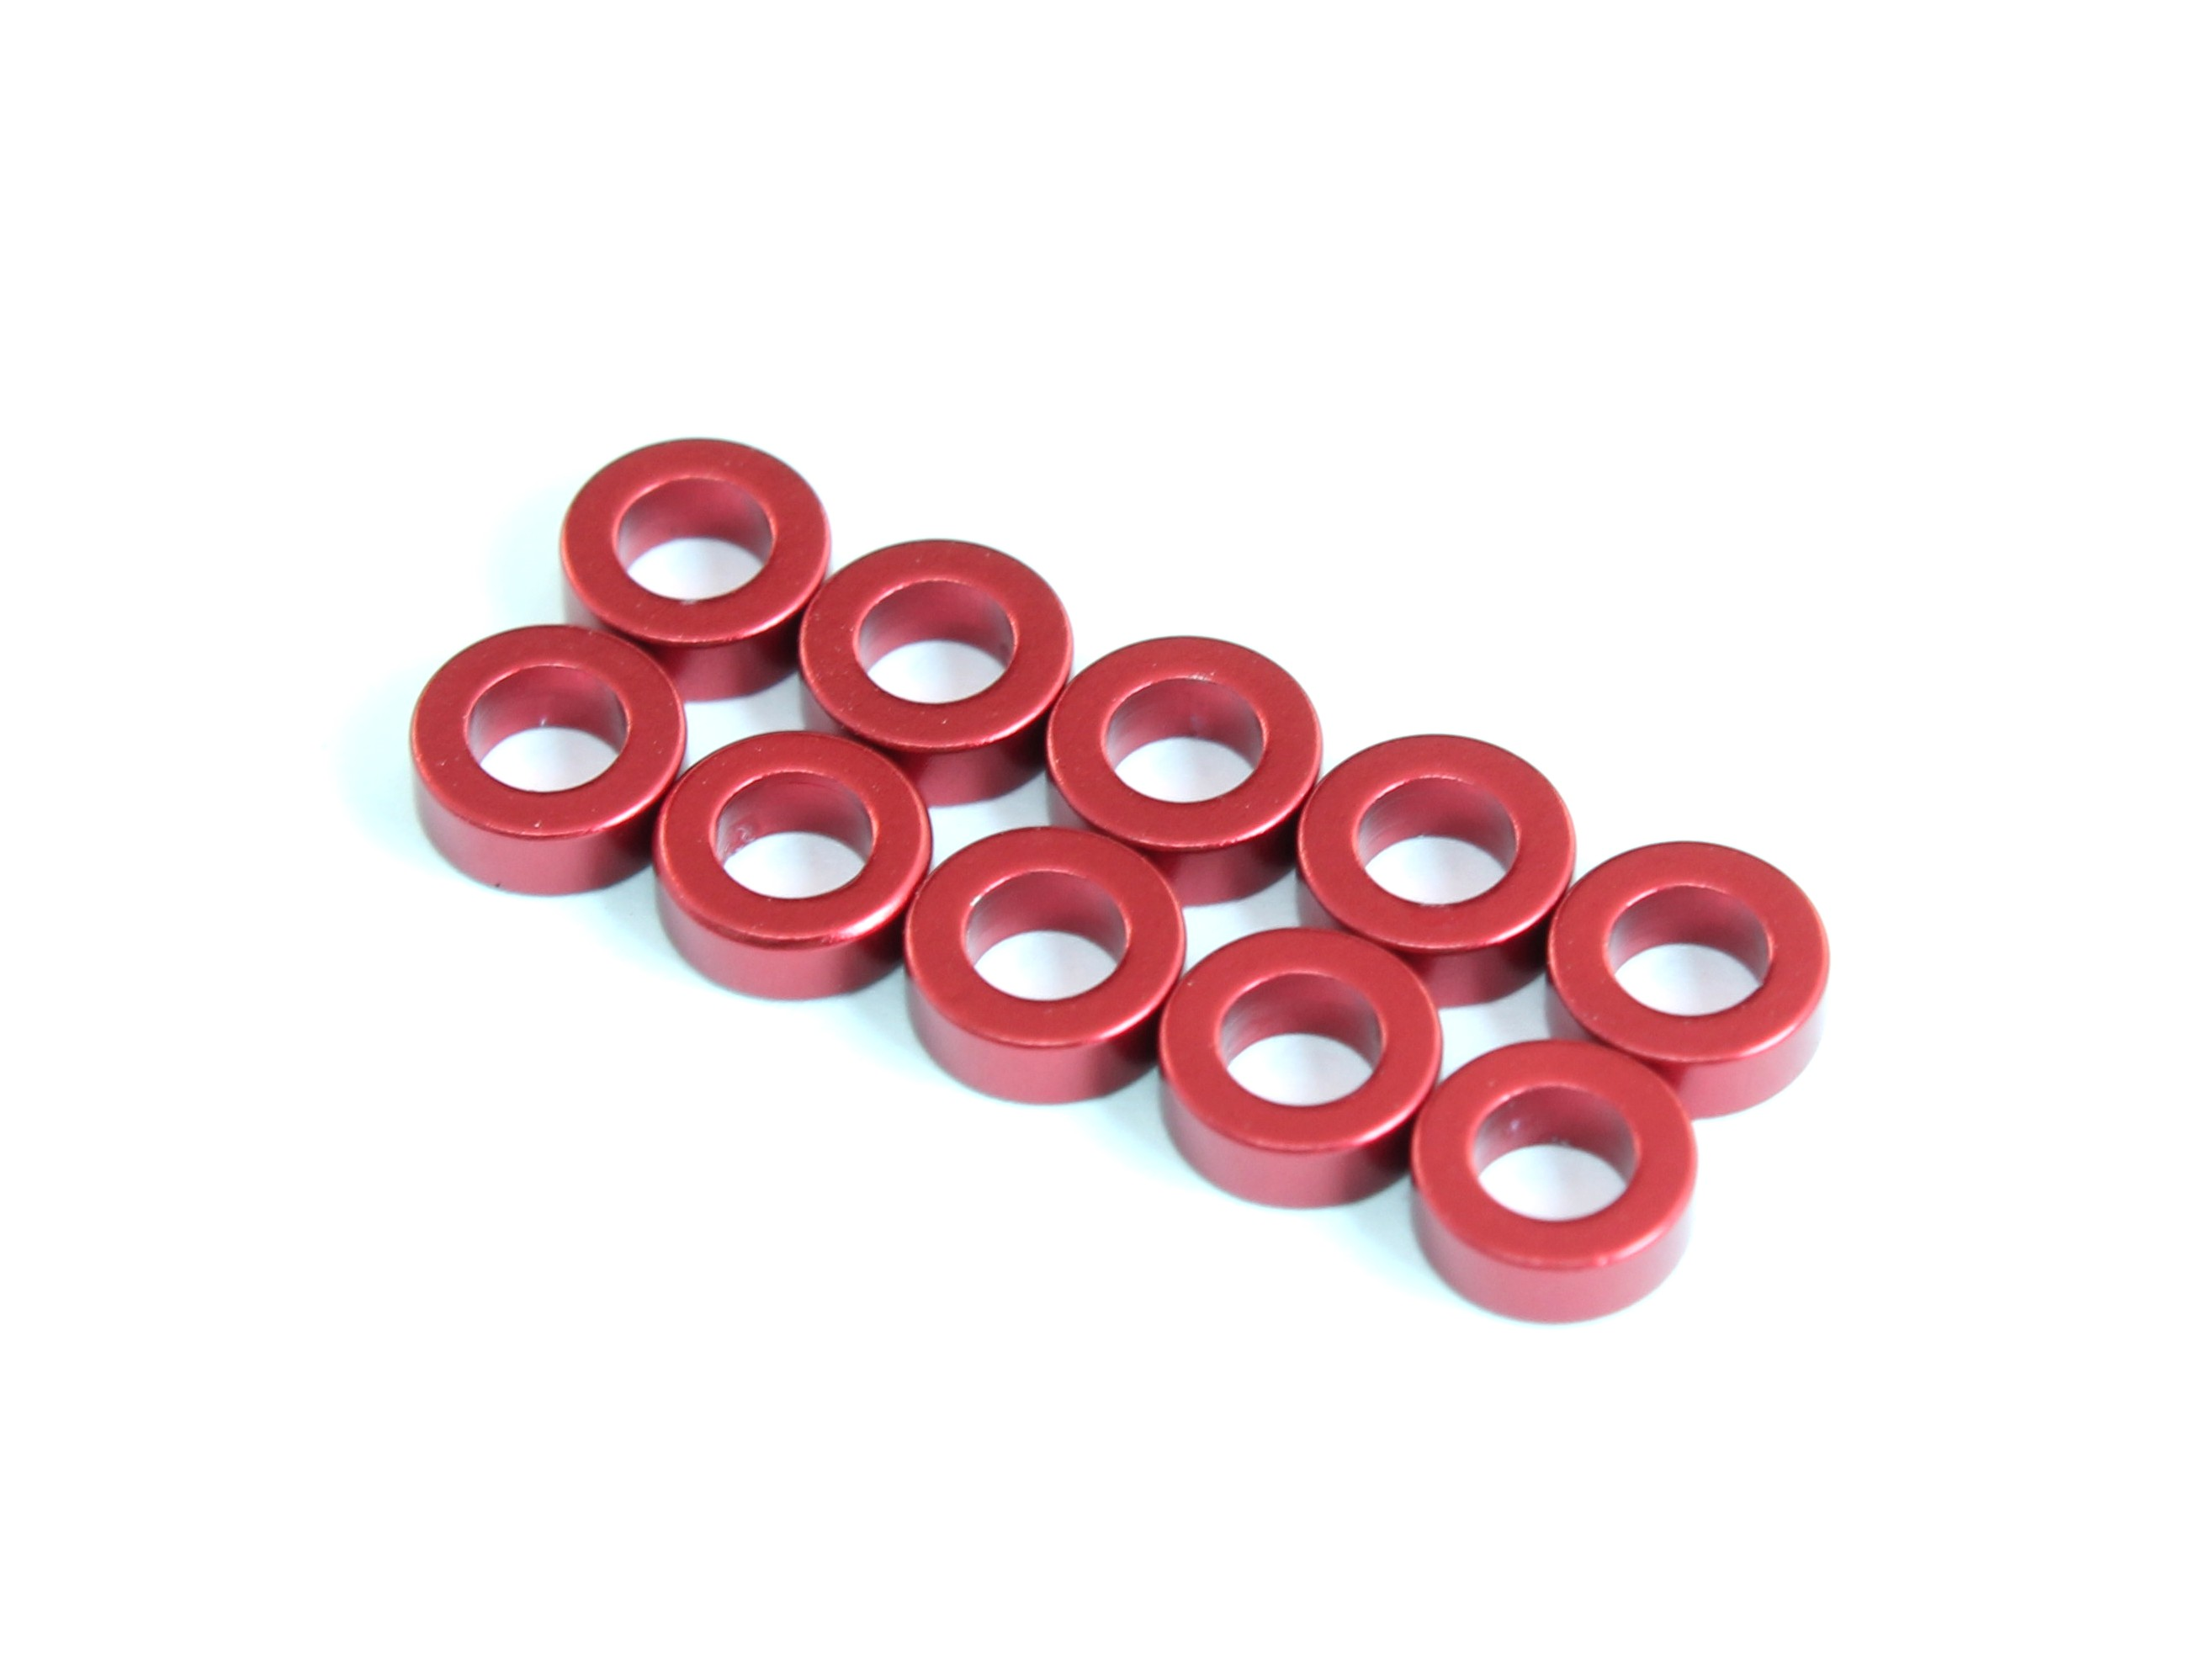 Roche Aluminium Spacer 3x5.5x2mm